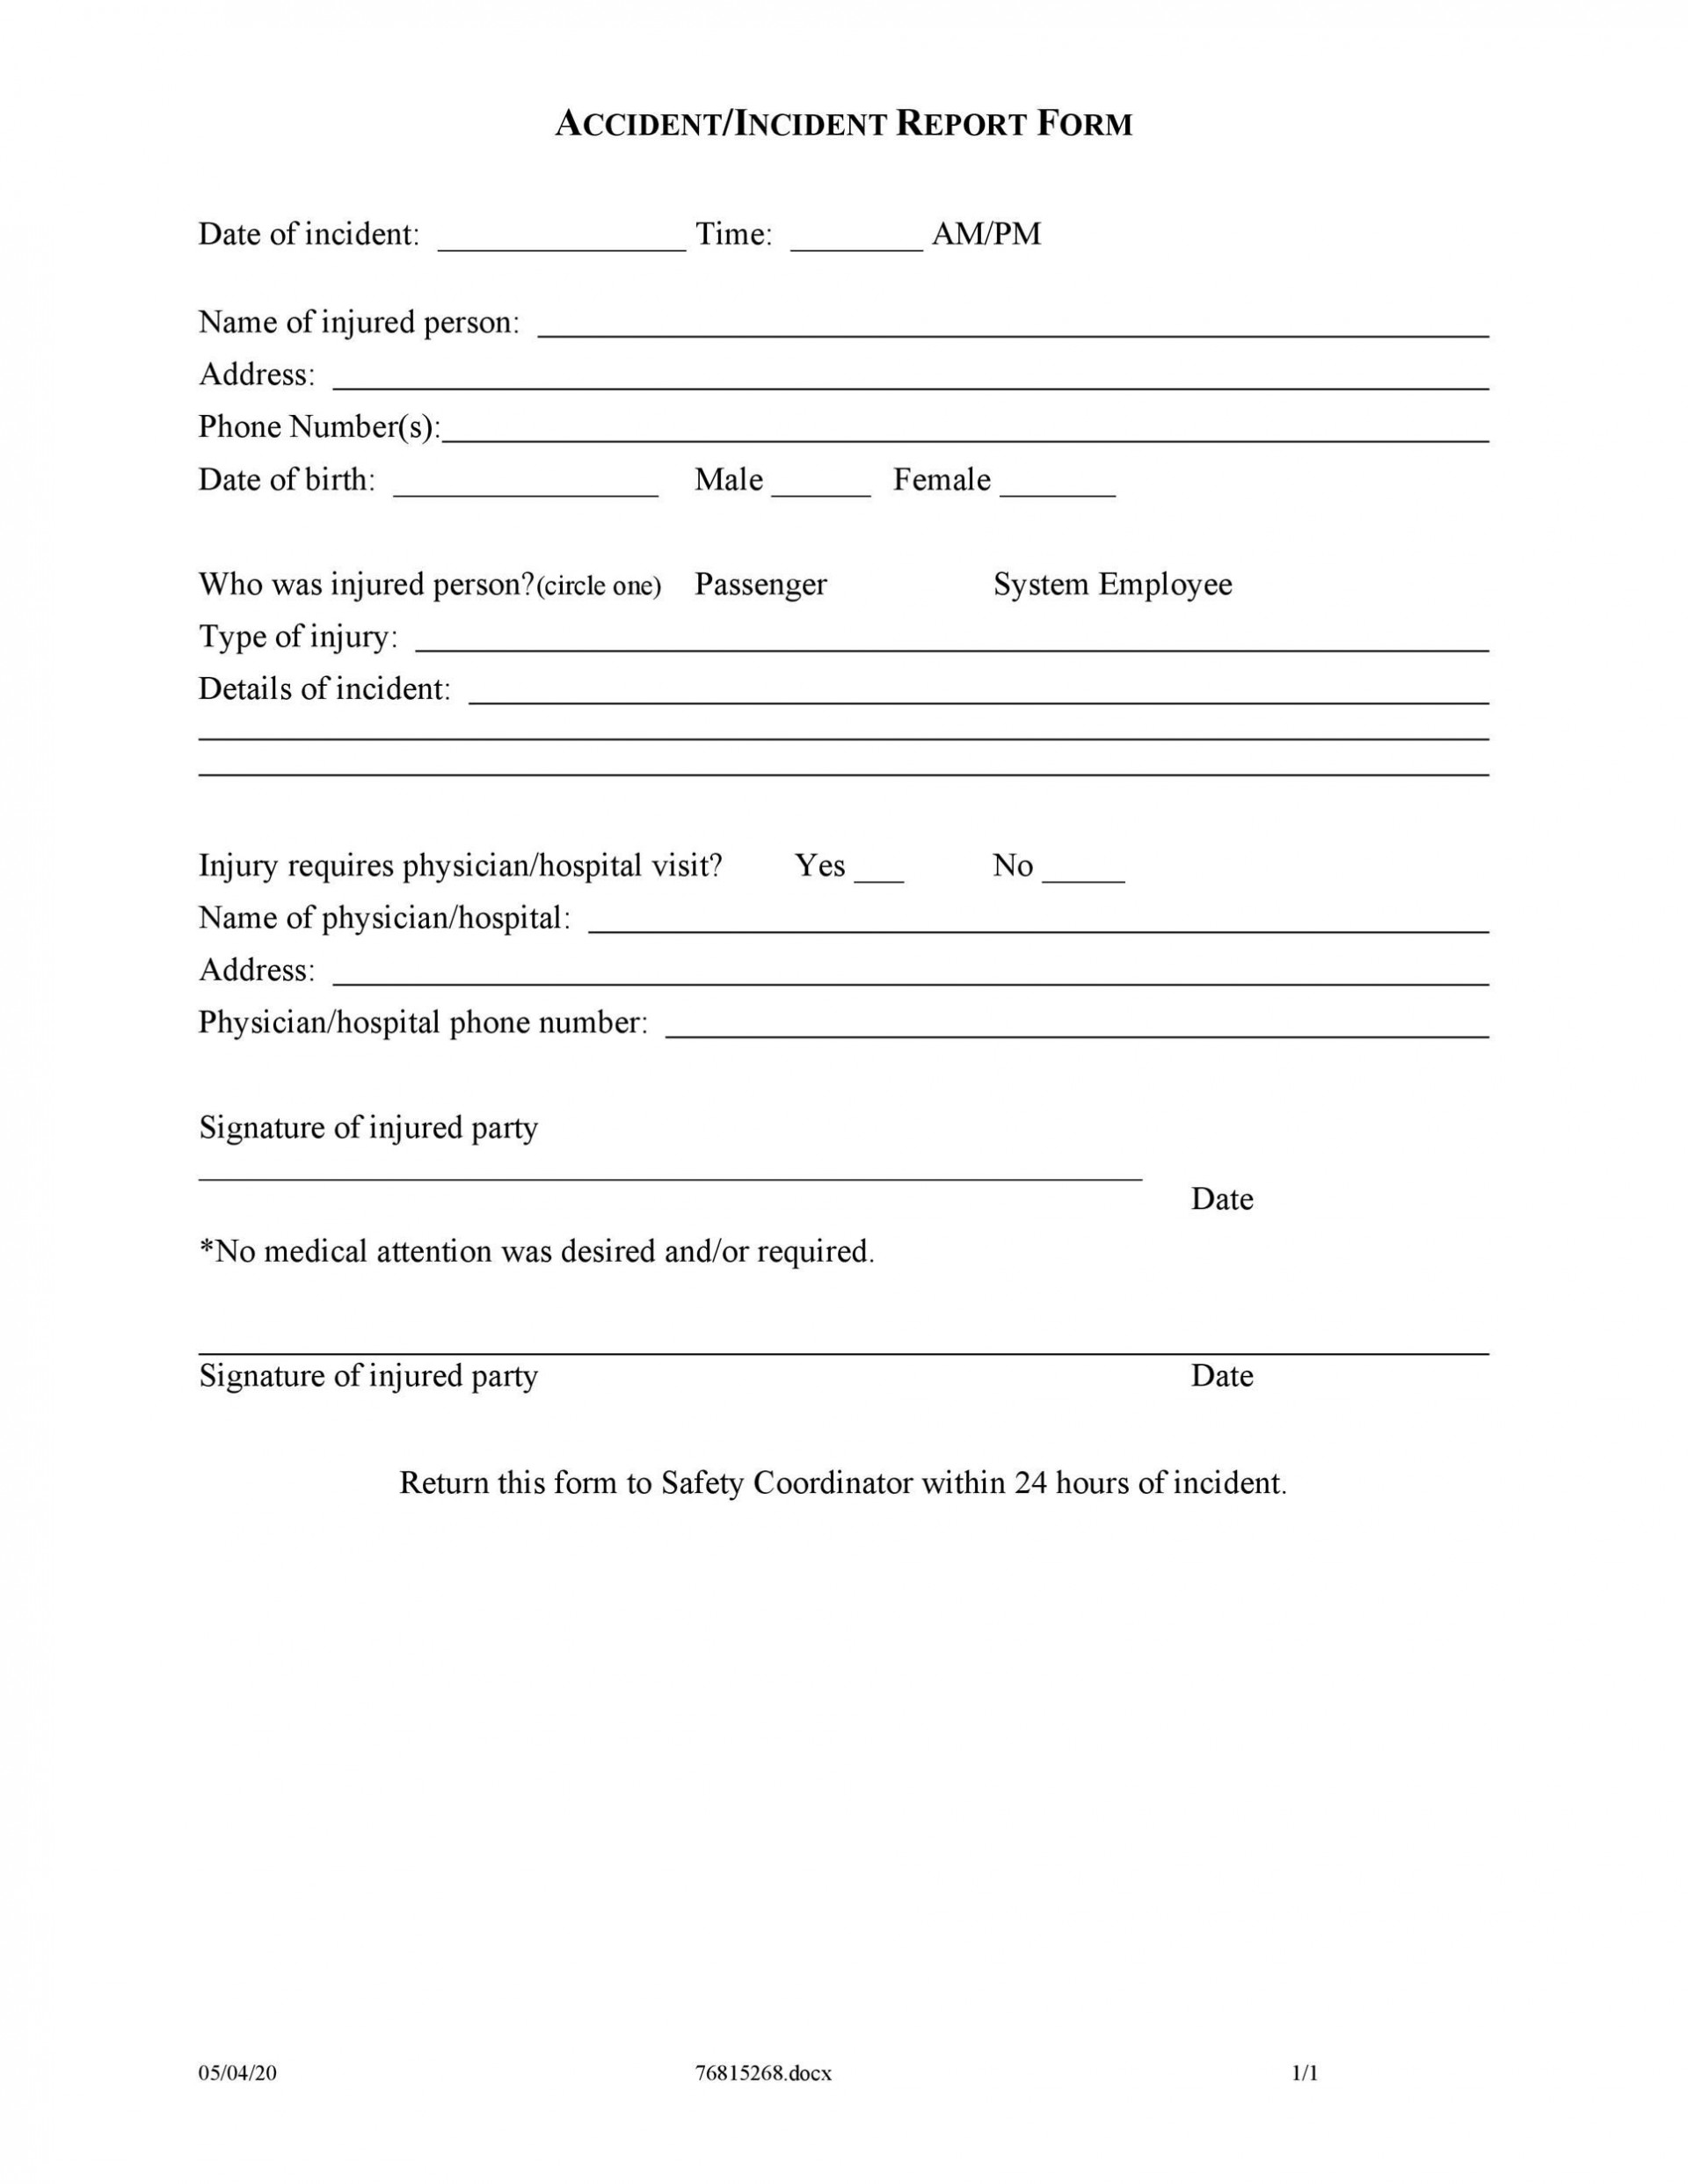 006 Wonderful Workplace Incident Report Form Template Nsw High Definition 1920